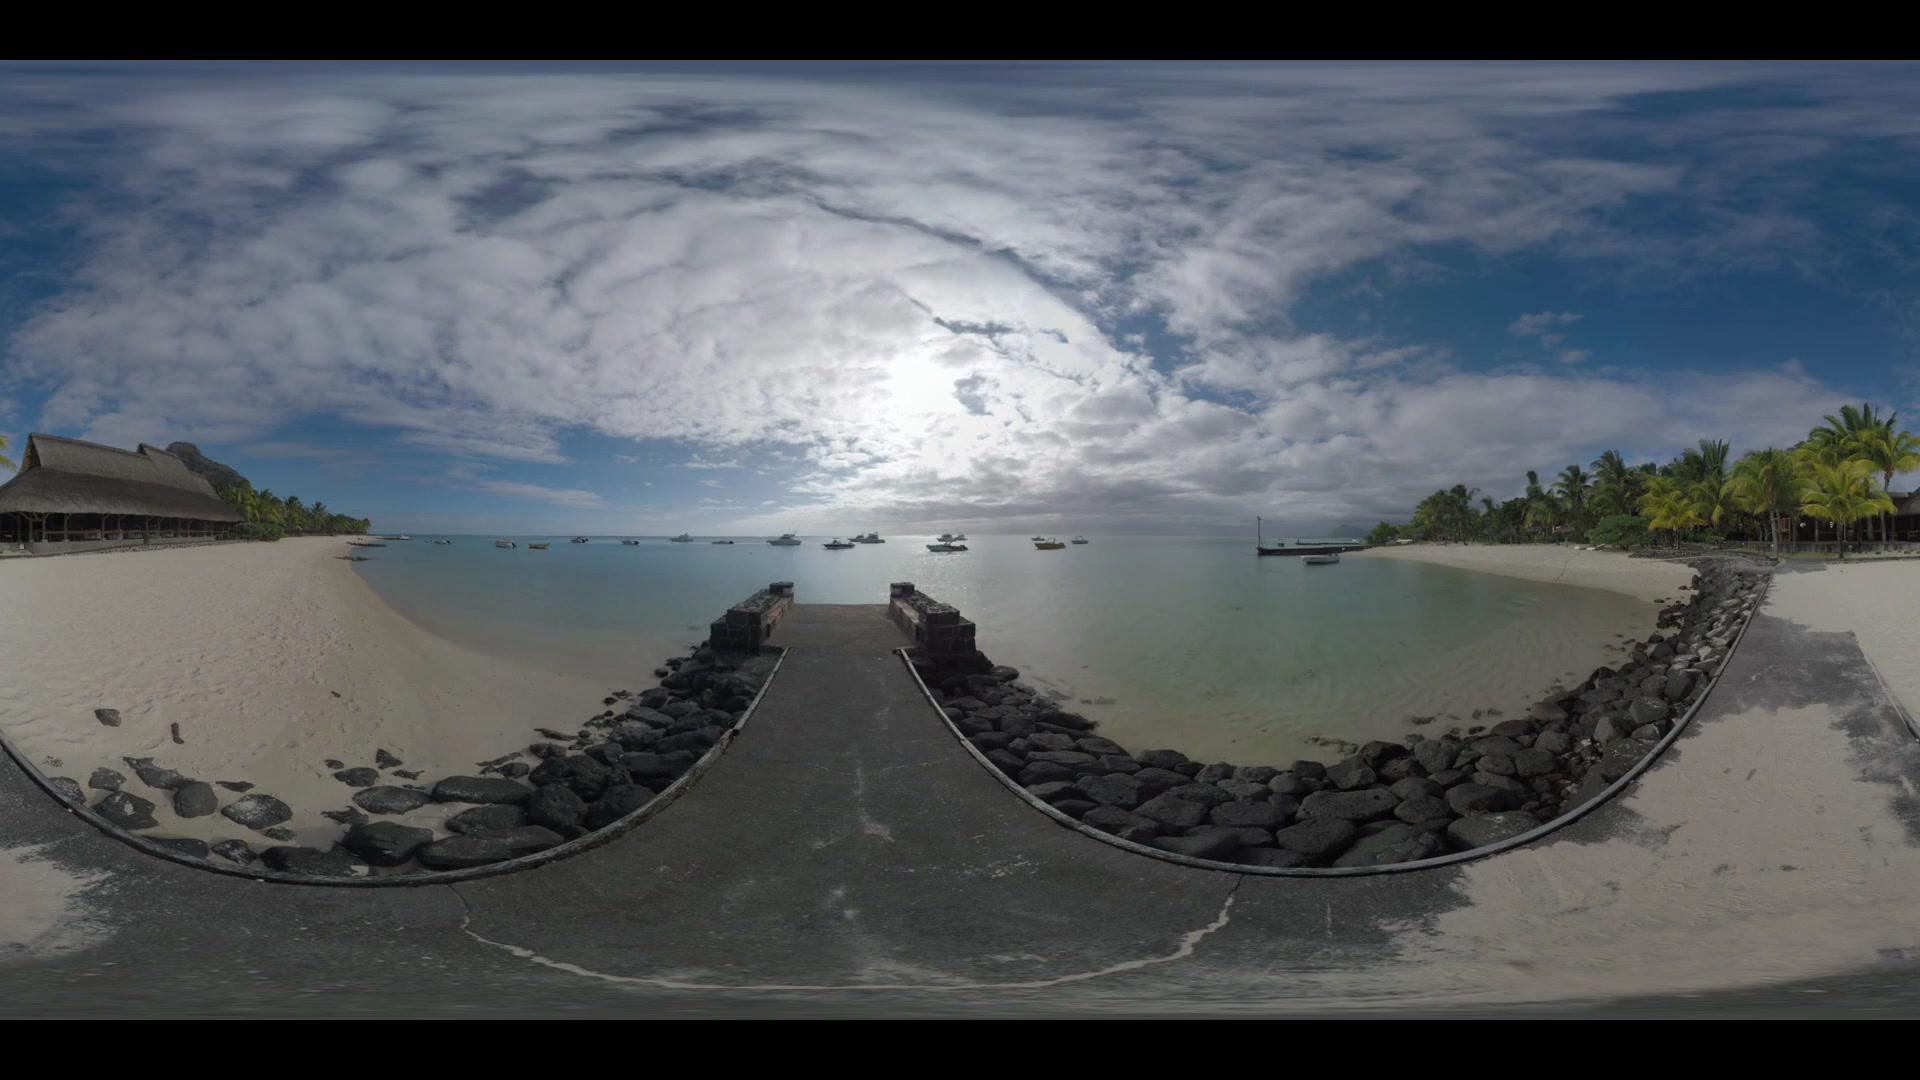 360 VR video. Beach with palms and pier leading into the shallow ocean water with many yachts and motor boats. Mauritius scene